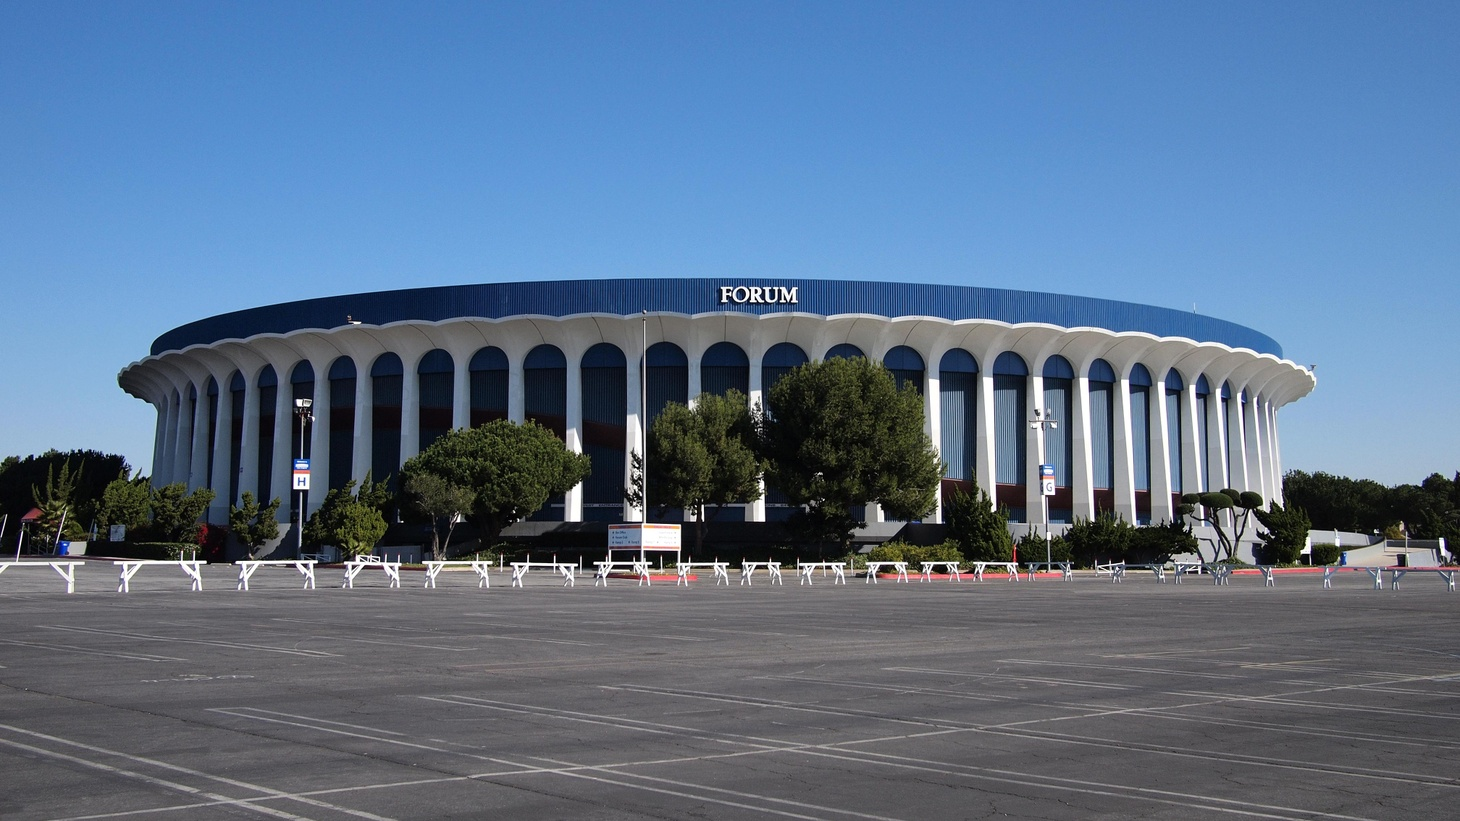 The Forum in Inglewood has been eclipsed by other LA venues. Now, that's about to change with a total investment of nearly 100 million dollars by Madison Square Garden.